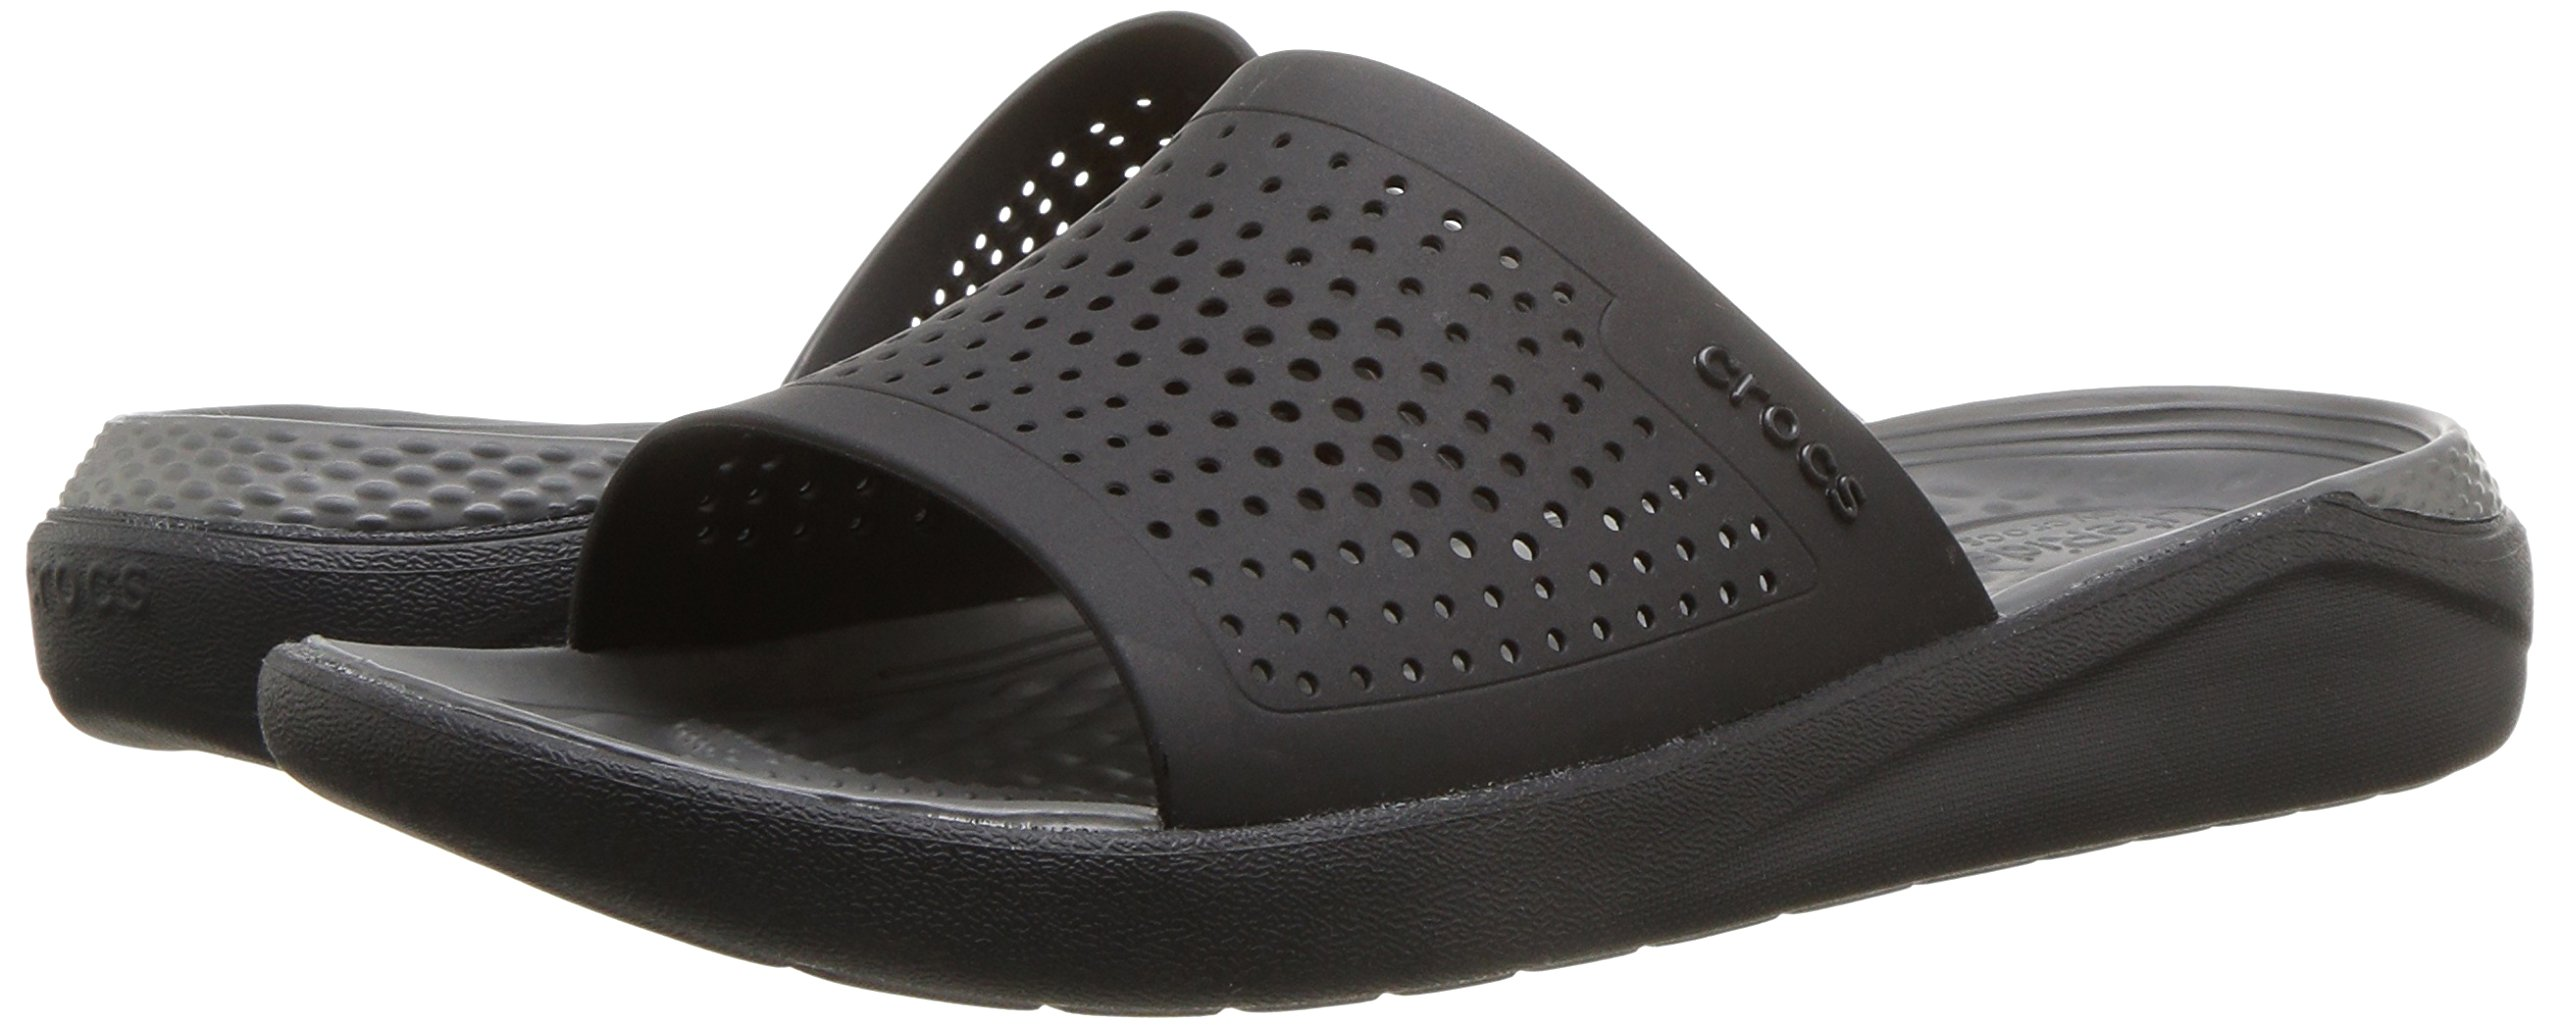 Crocs Unisex-Adults Literide Slide Sandal, Black/Slate Grey, 8 US Men/10 US Women by Crocs (Image #6)